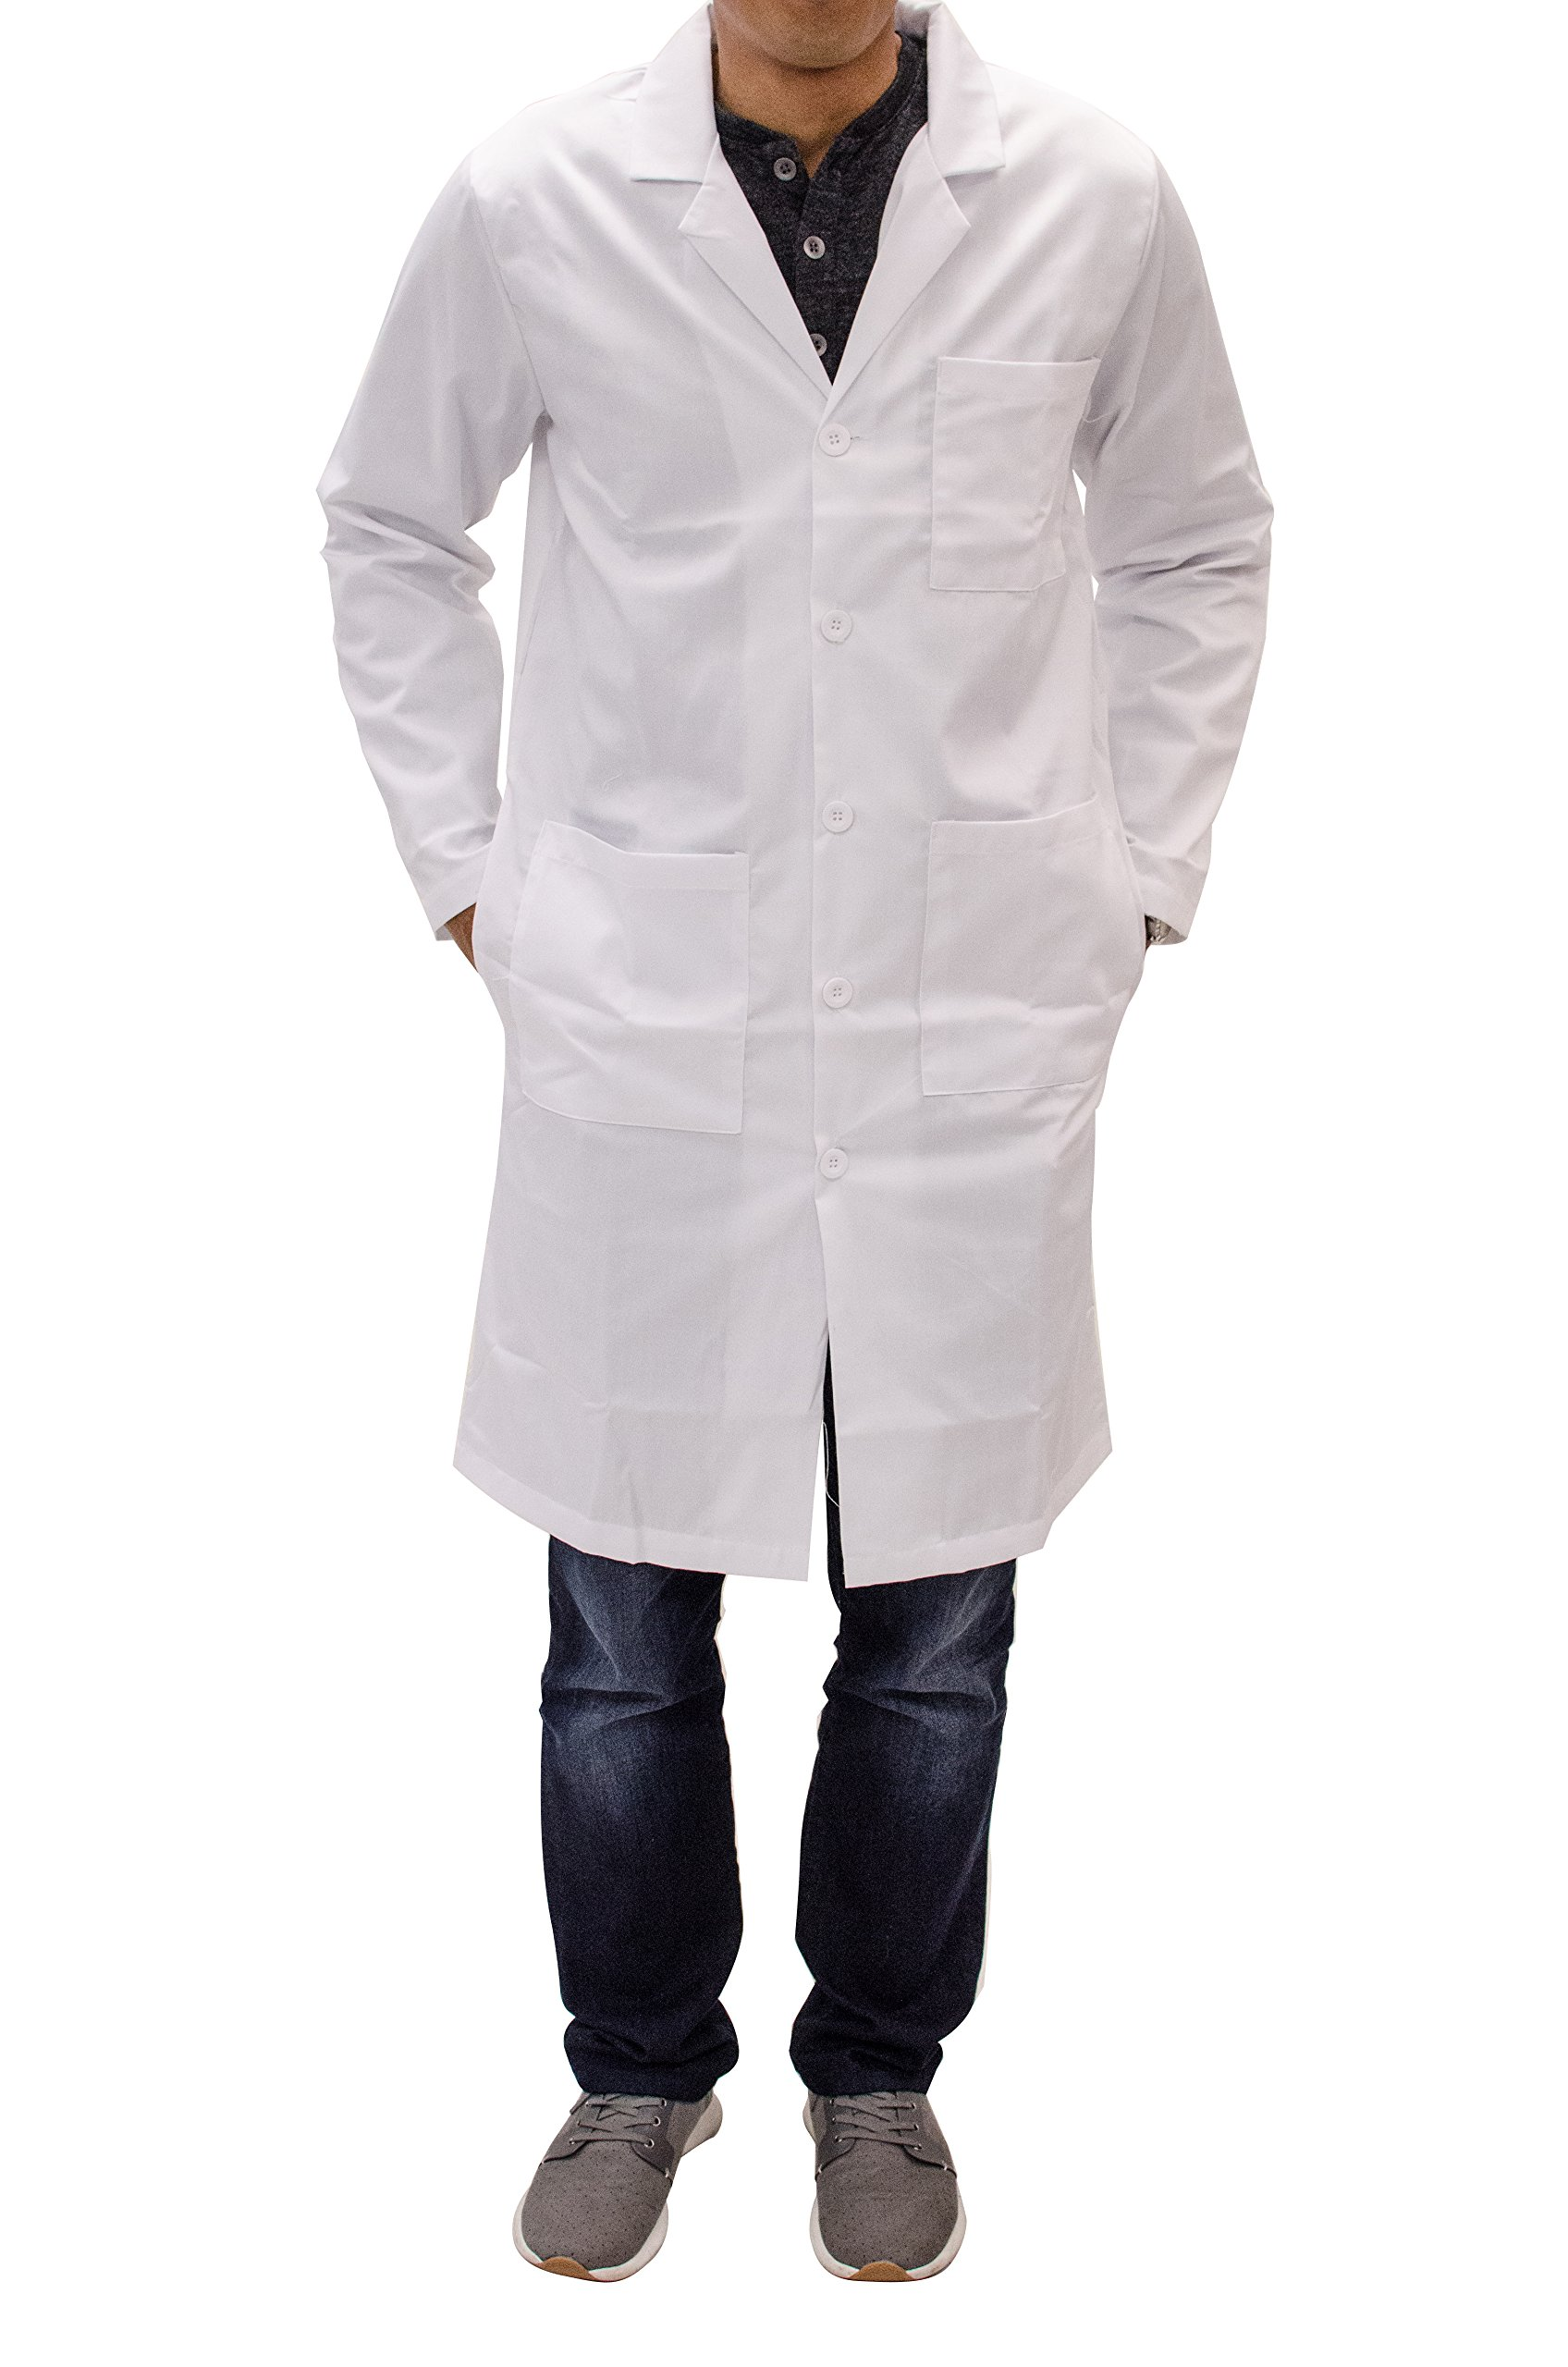 Unisex Long White Lab Coat - Chemistry, Biology, Organic Chem, Science Student Lab (S)